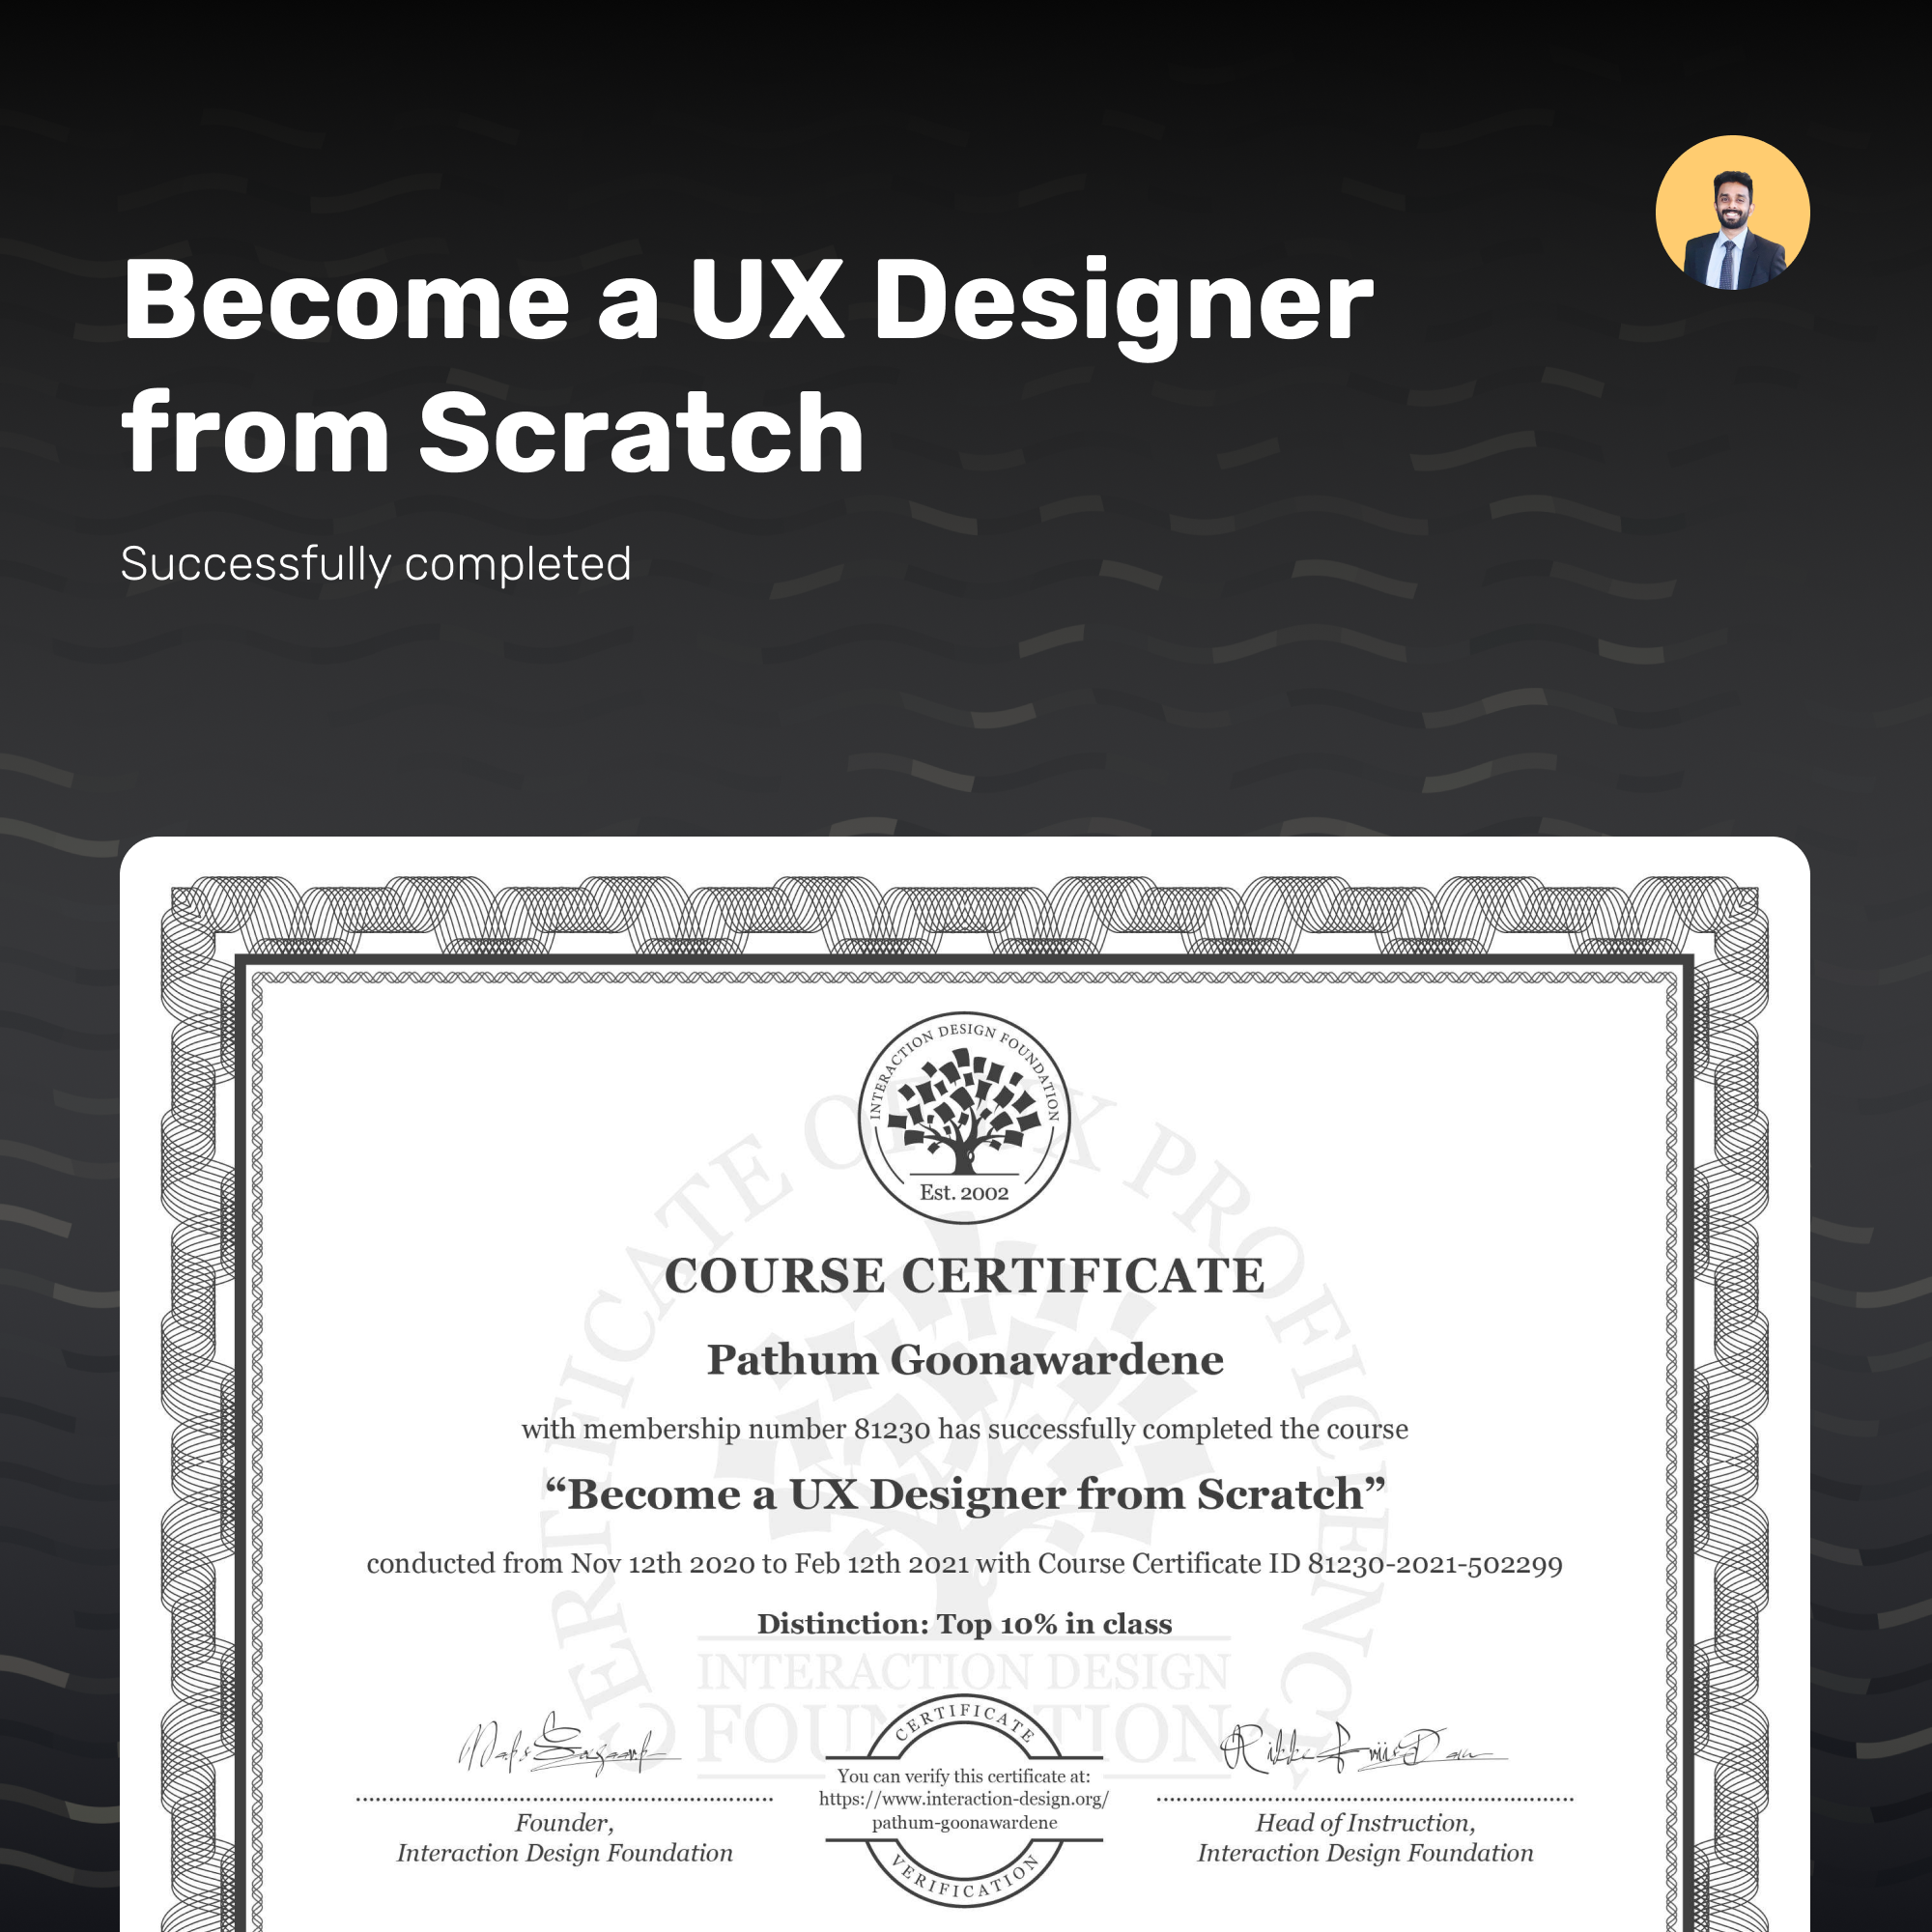 Become a UX Designer from Scratch